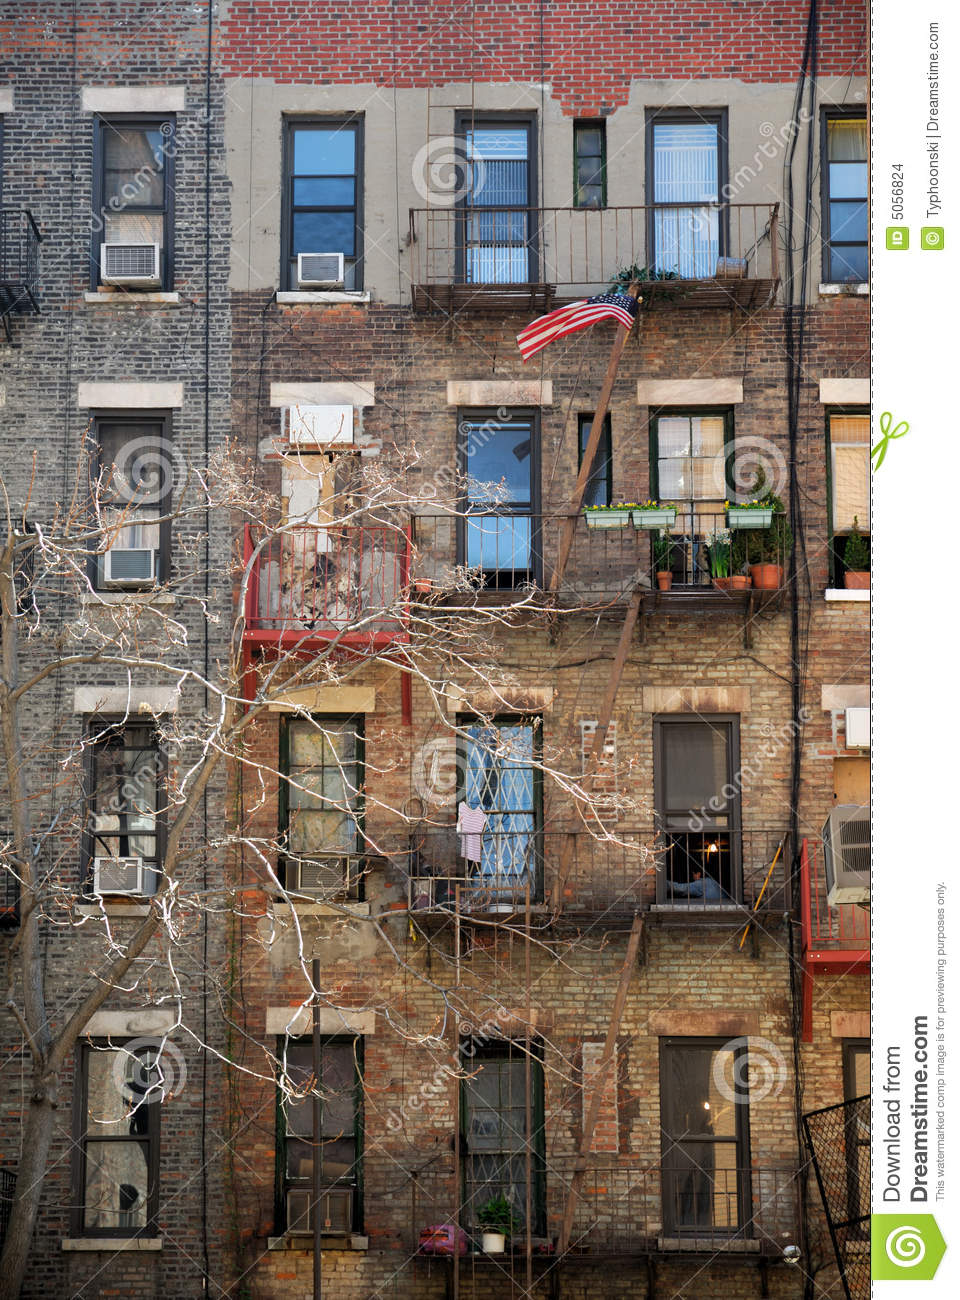 Charmant Apartment Building In New York Building In Stock Photo Image Of City